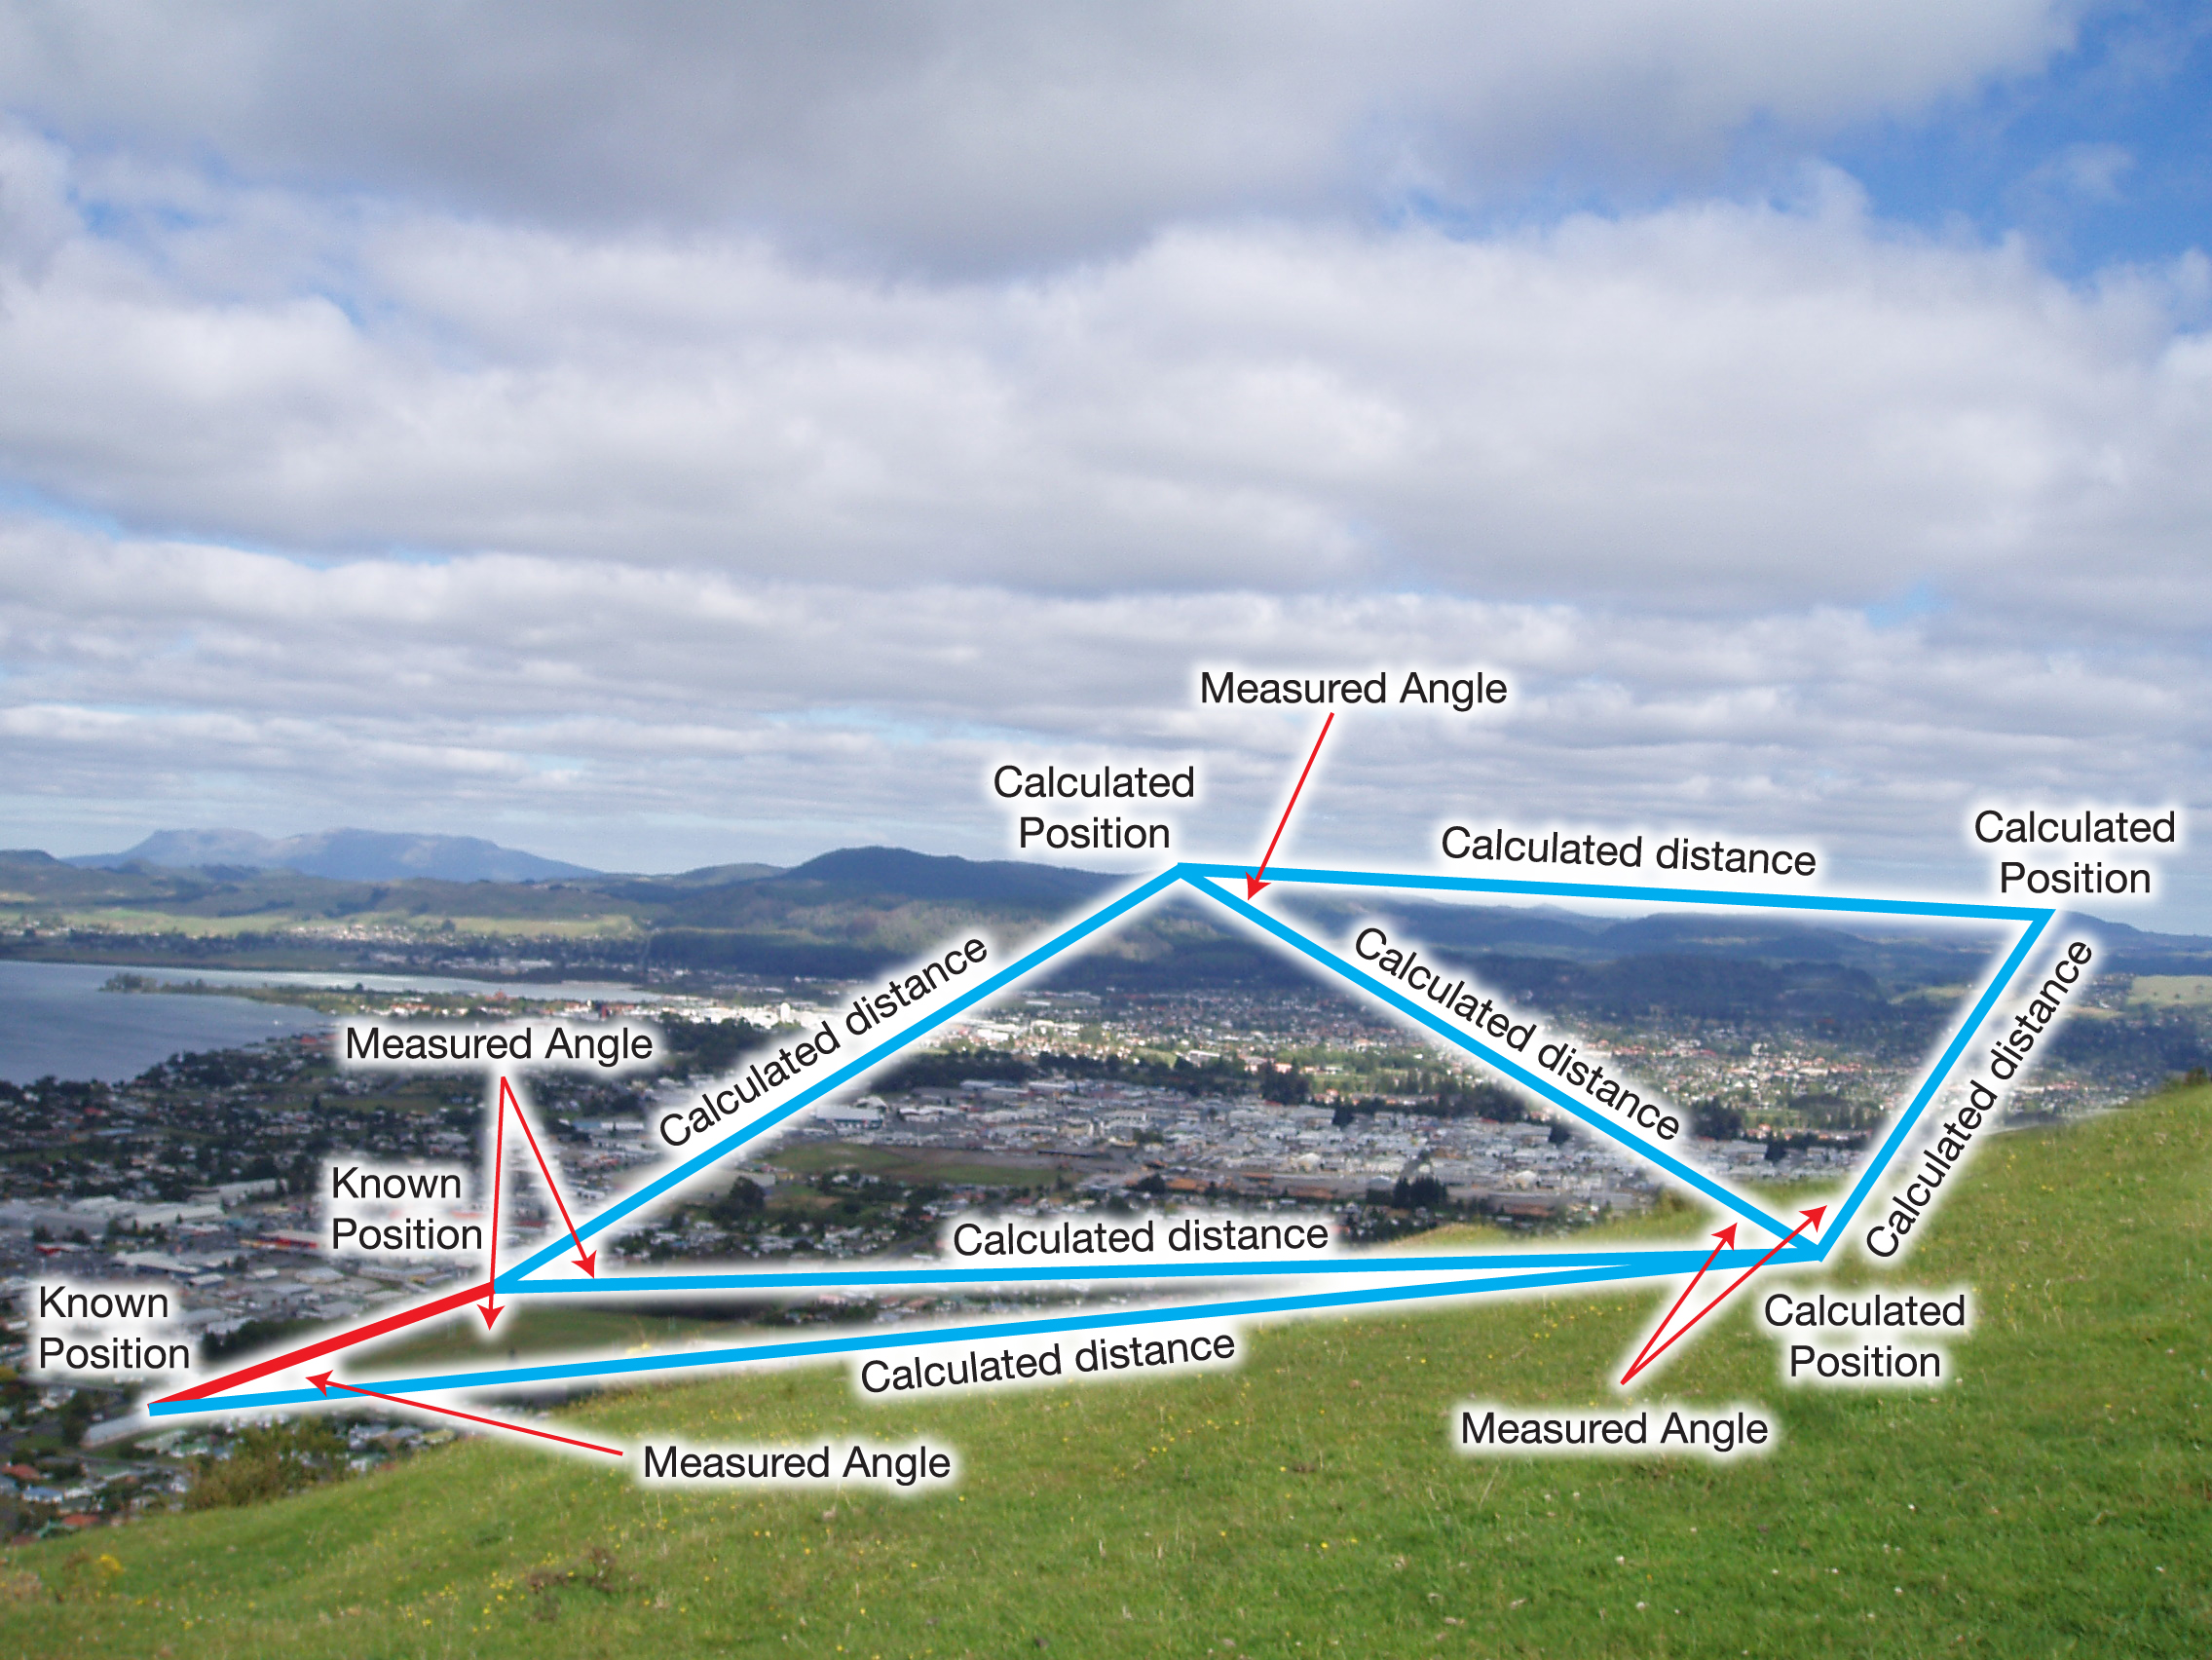 Image of a triangulation network, diagram placed over an image of a town to make an example.